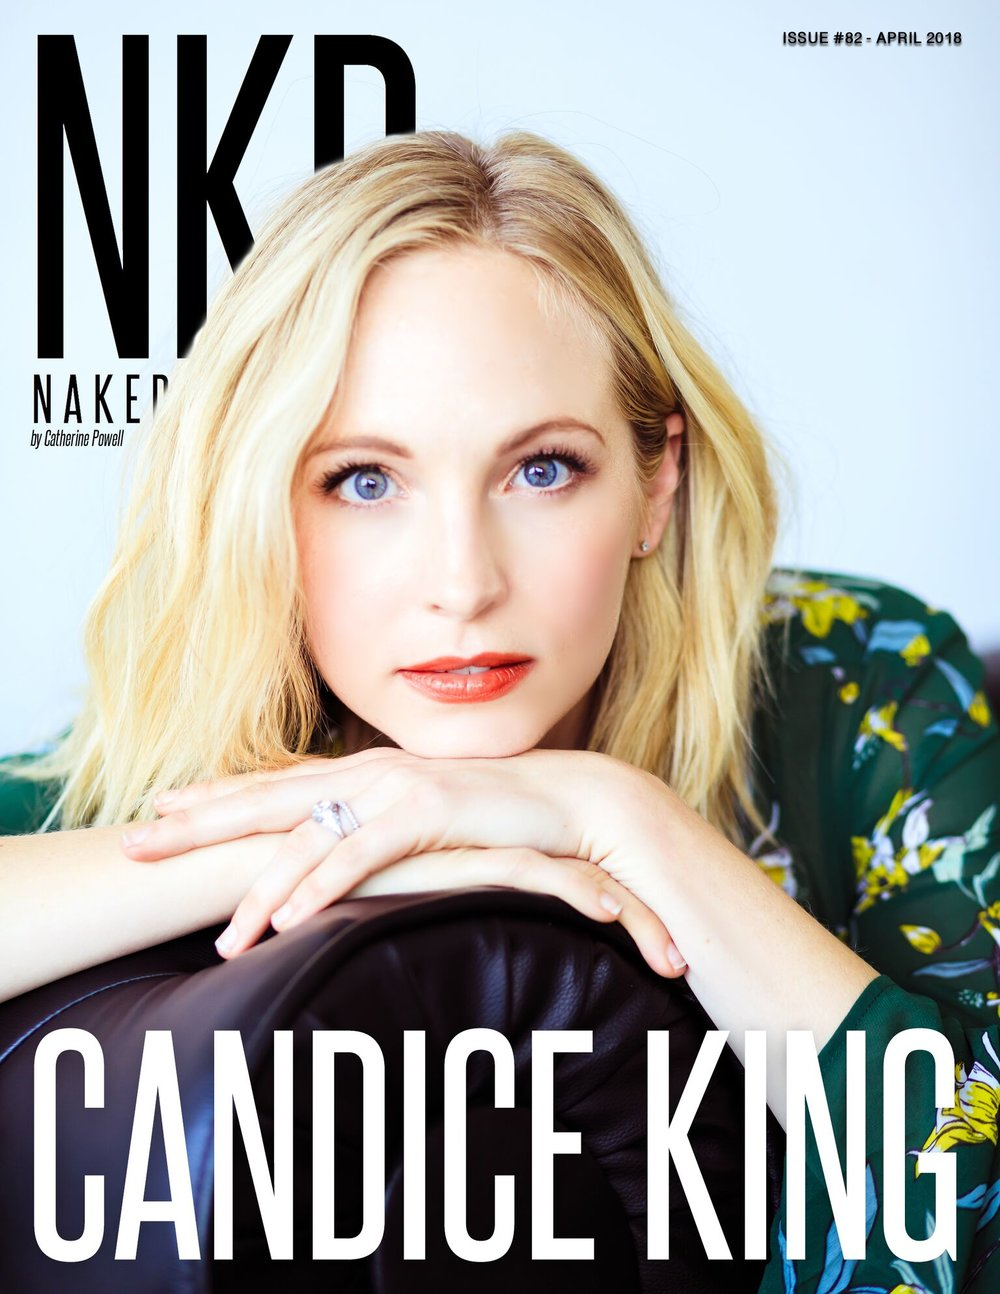 candice king cover.jpg